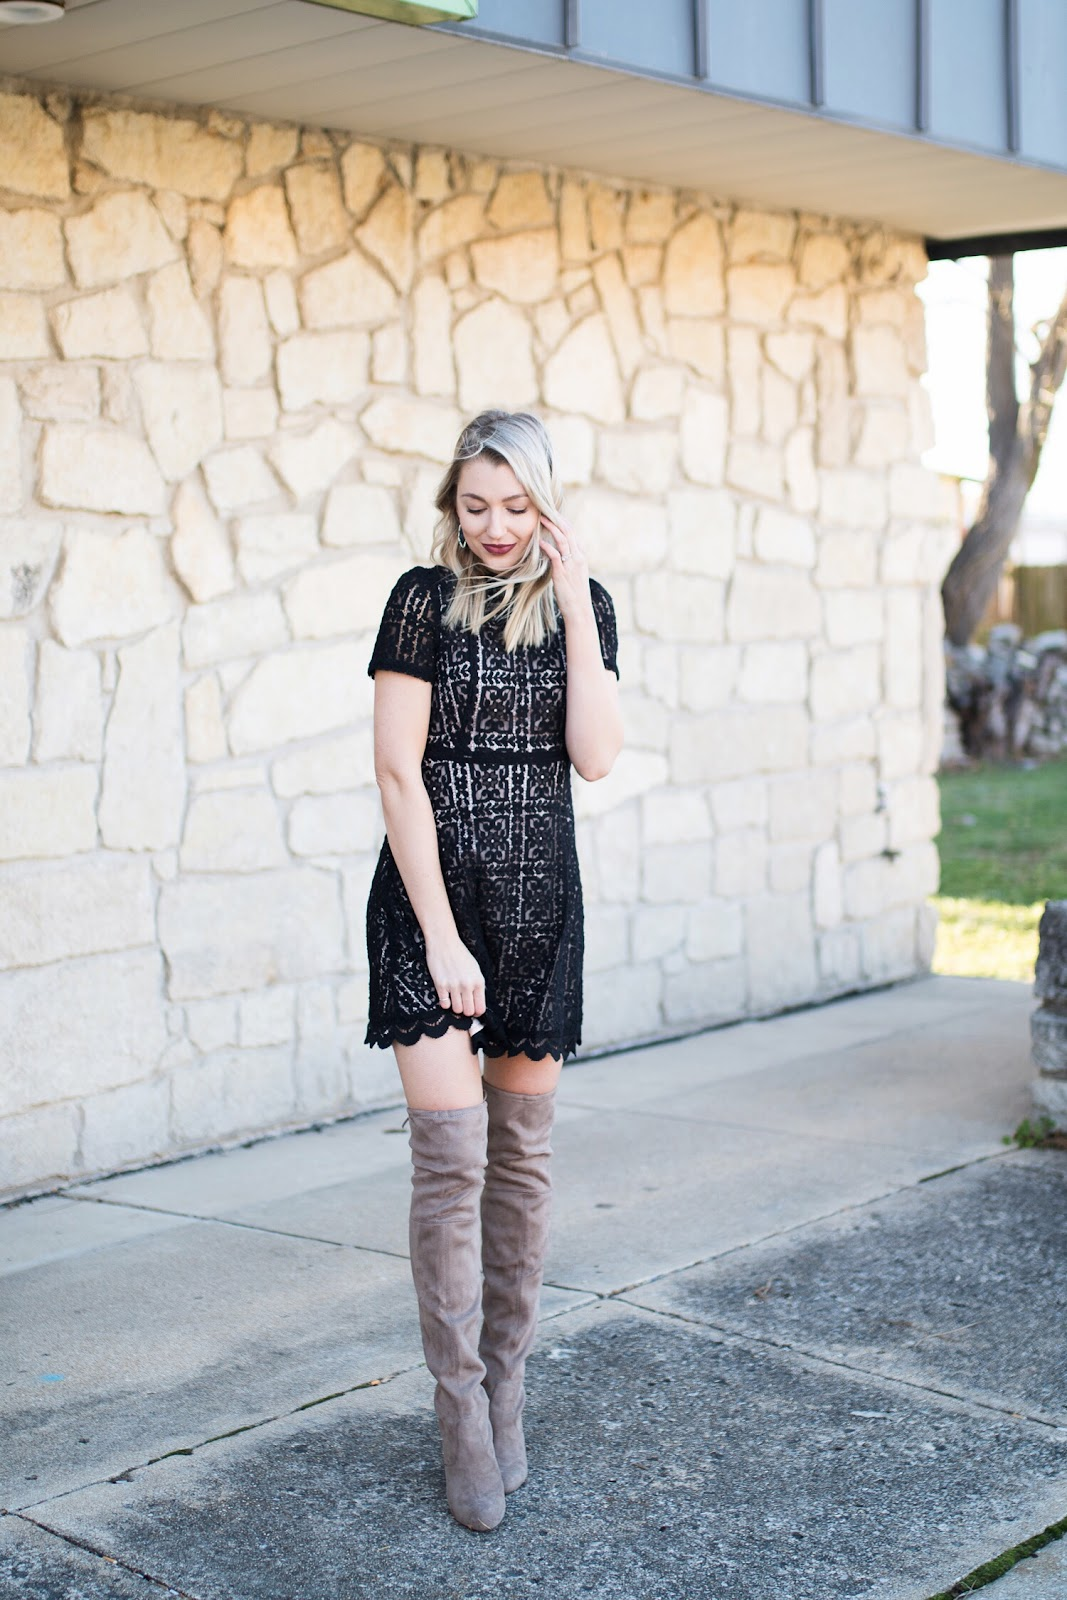 Holiday dress with over-the-knee boots